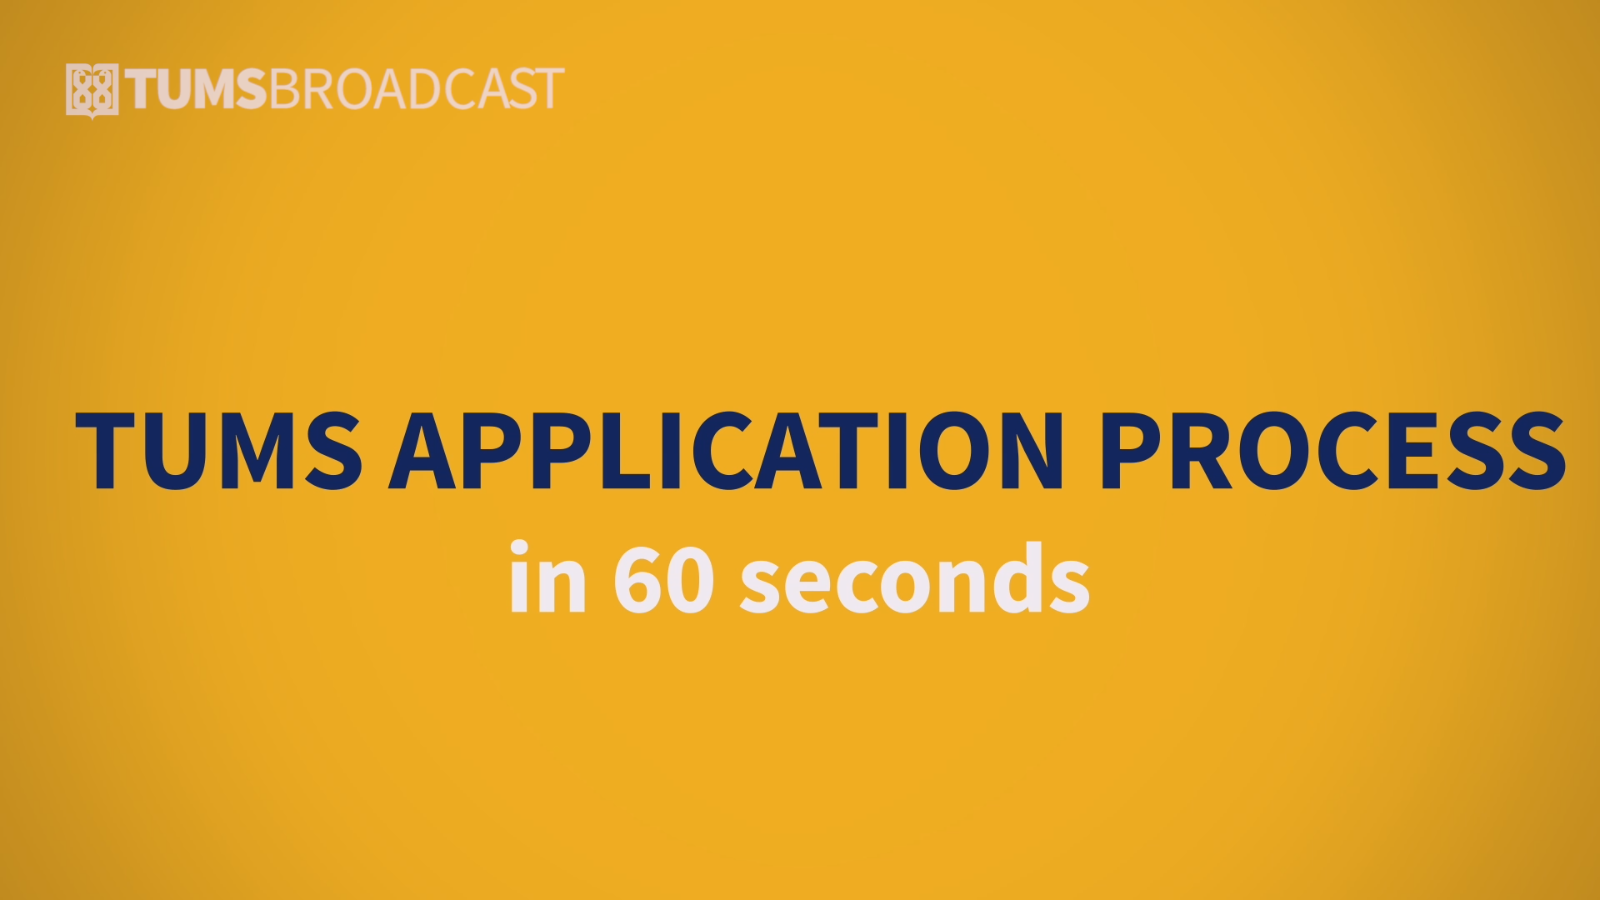 TUMS Application Process in 60 Seconds